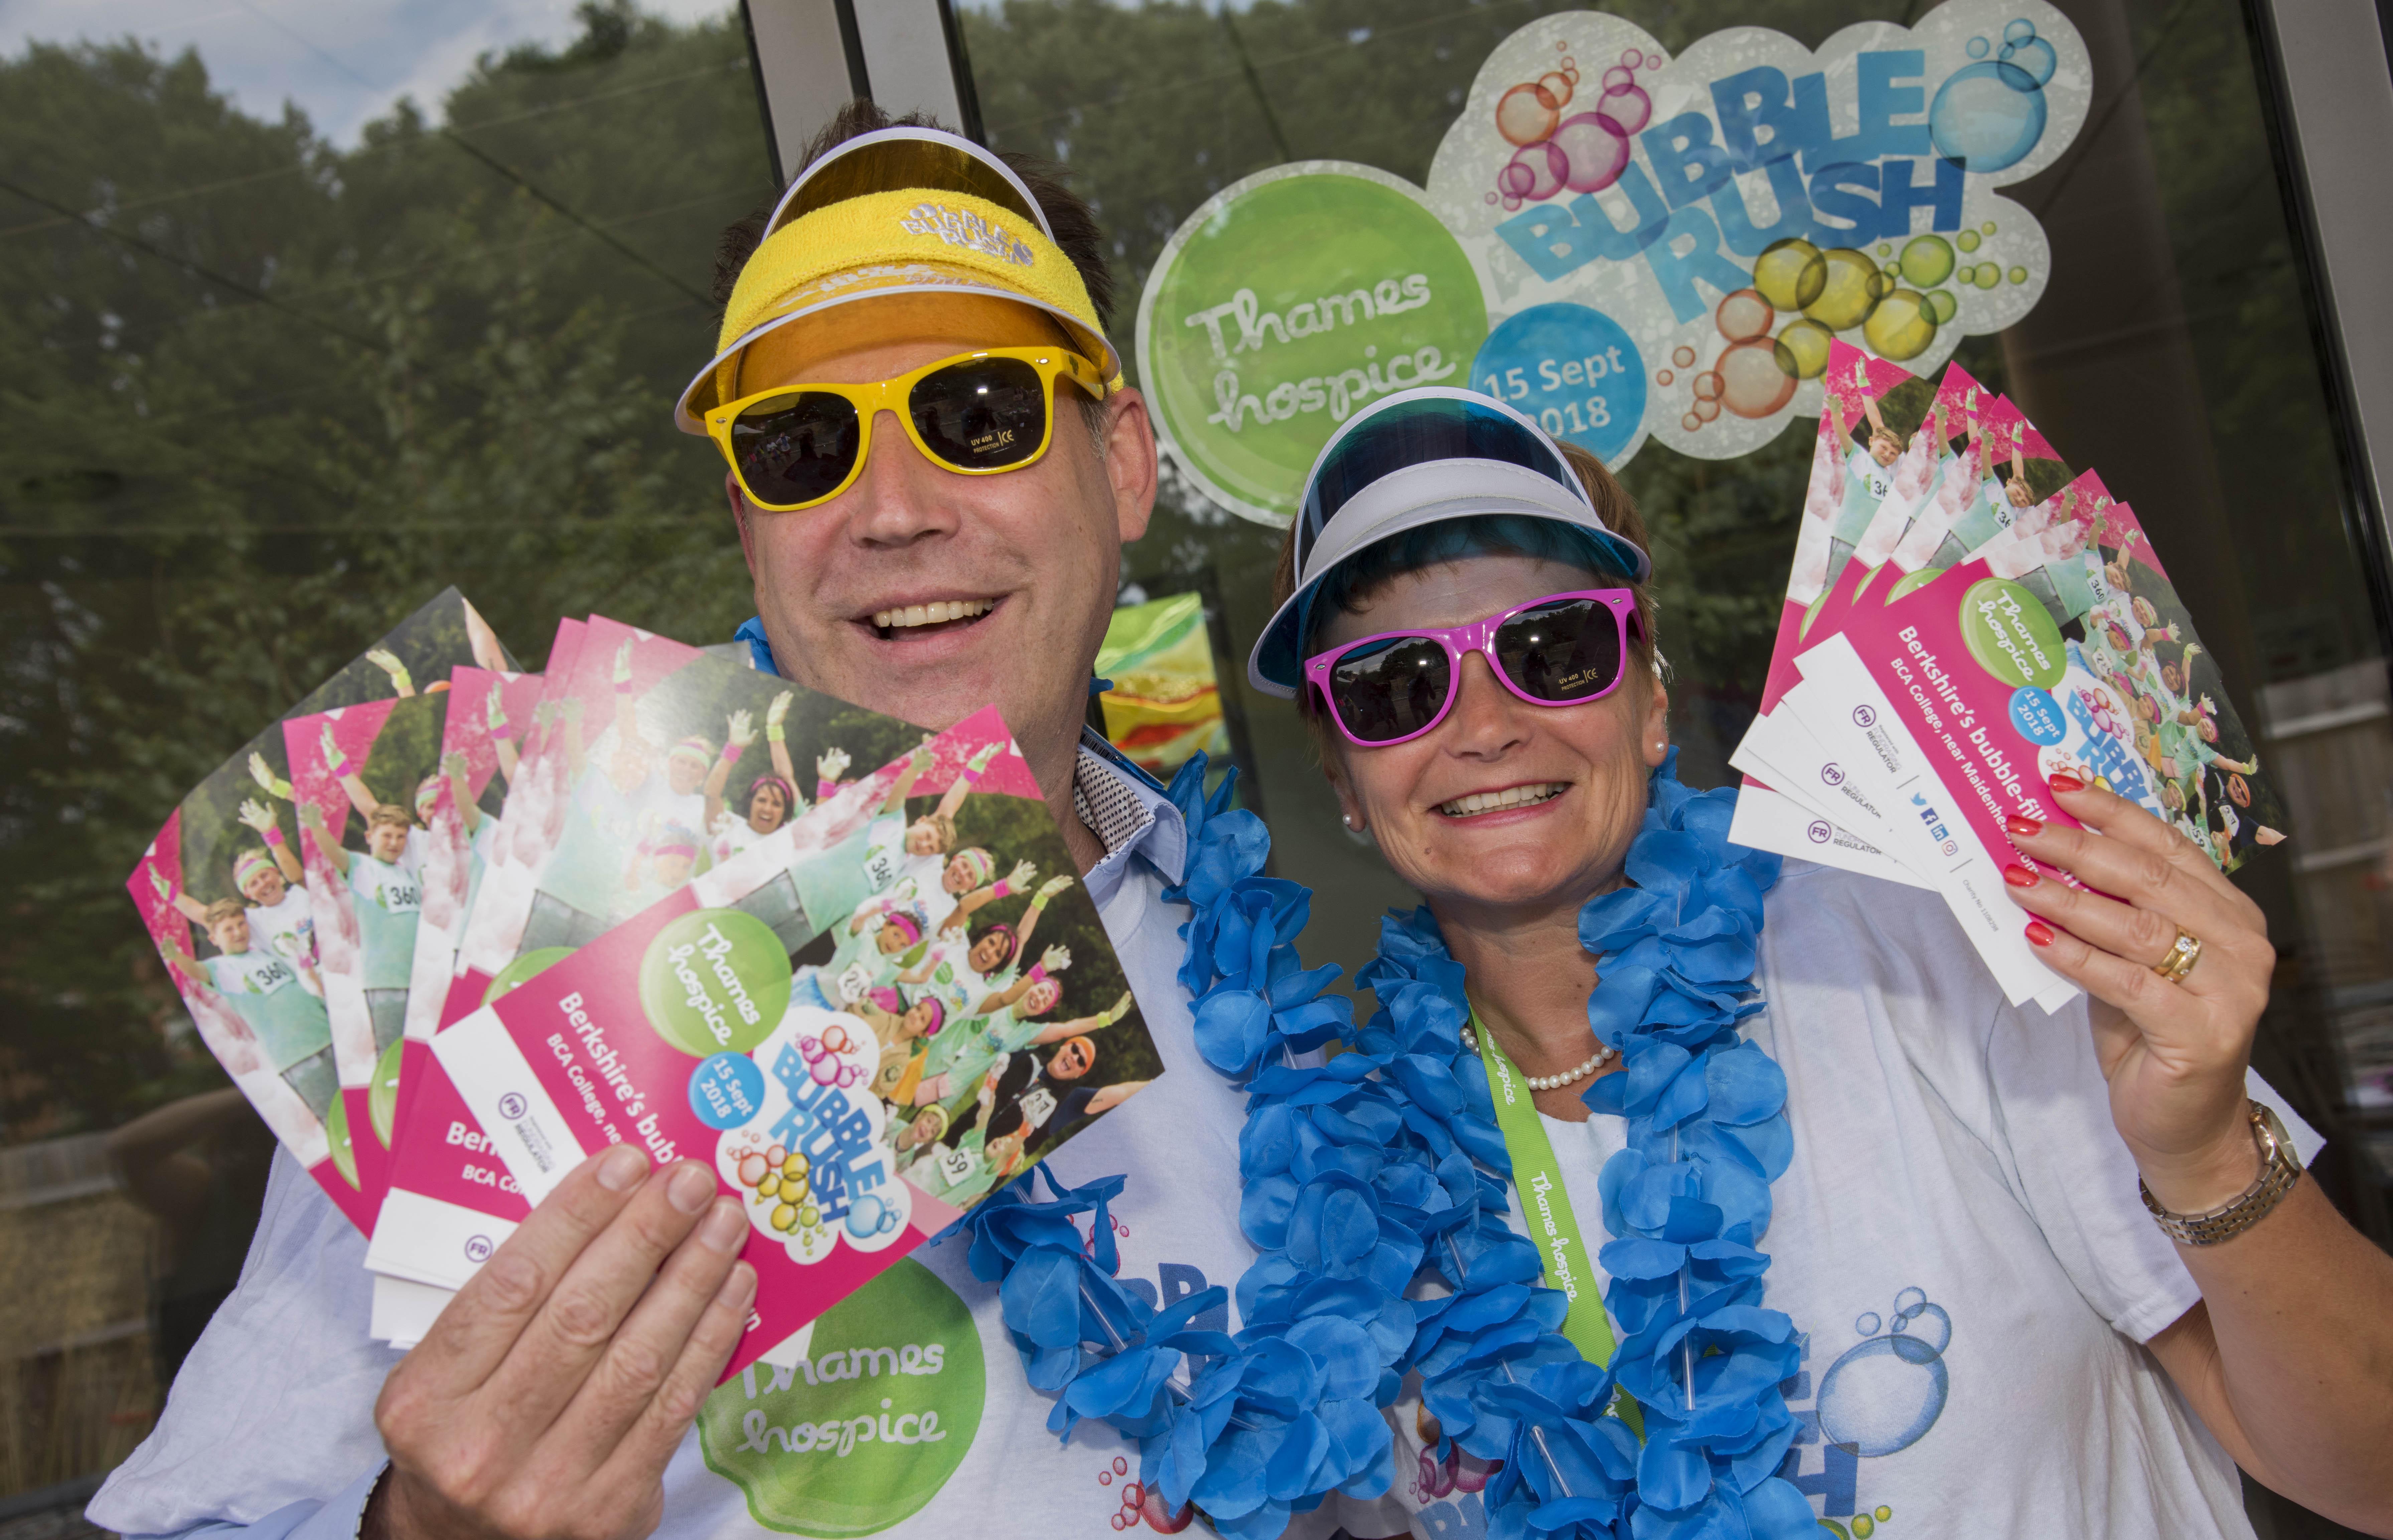 Neil Grundon (left) joined Debbie Raven, Chief Executive at Thames Hospice, to show his support for Bubble Rush